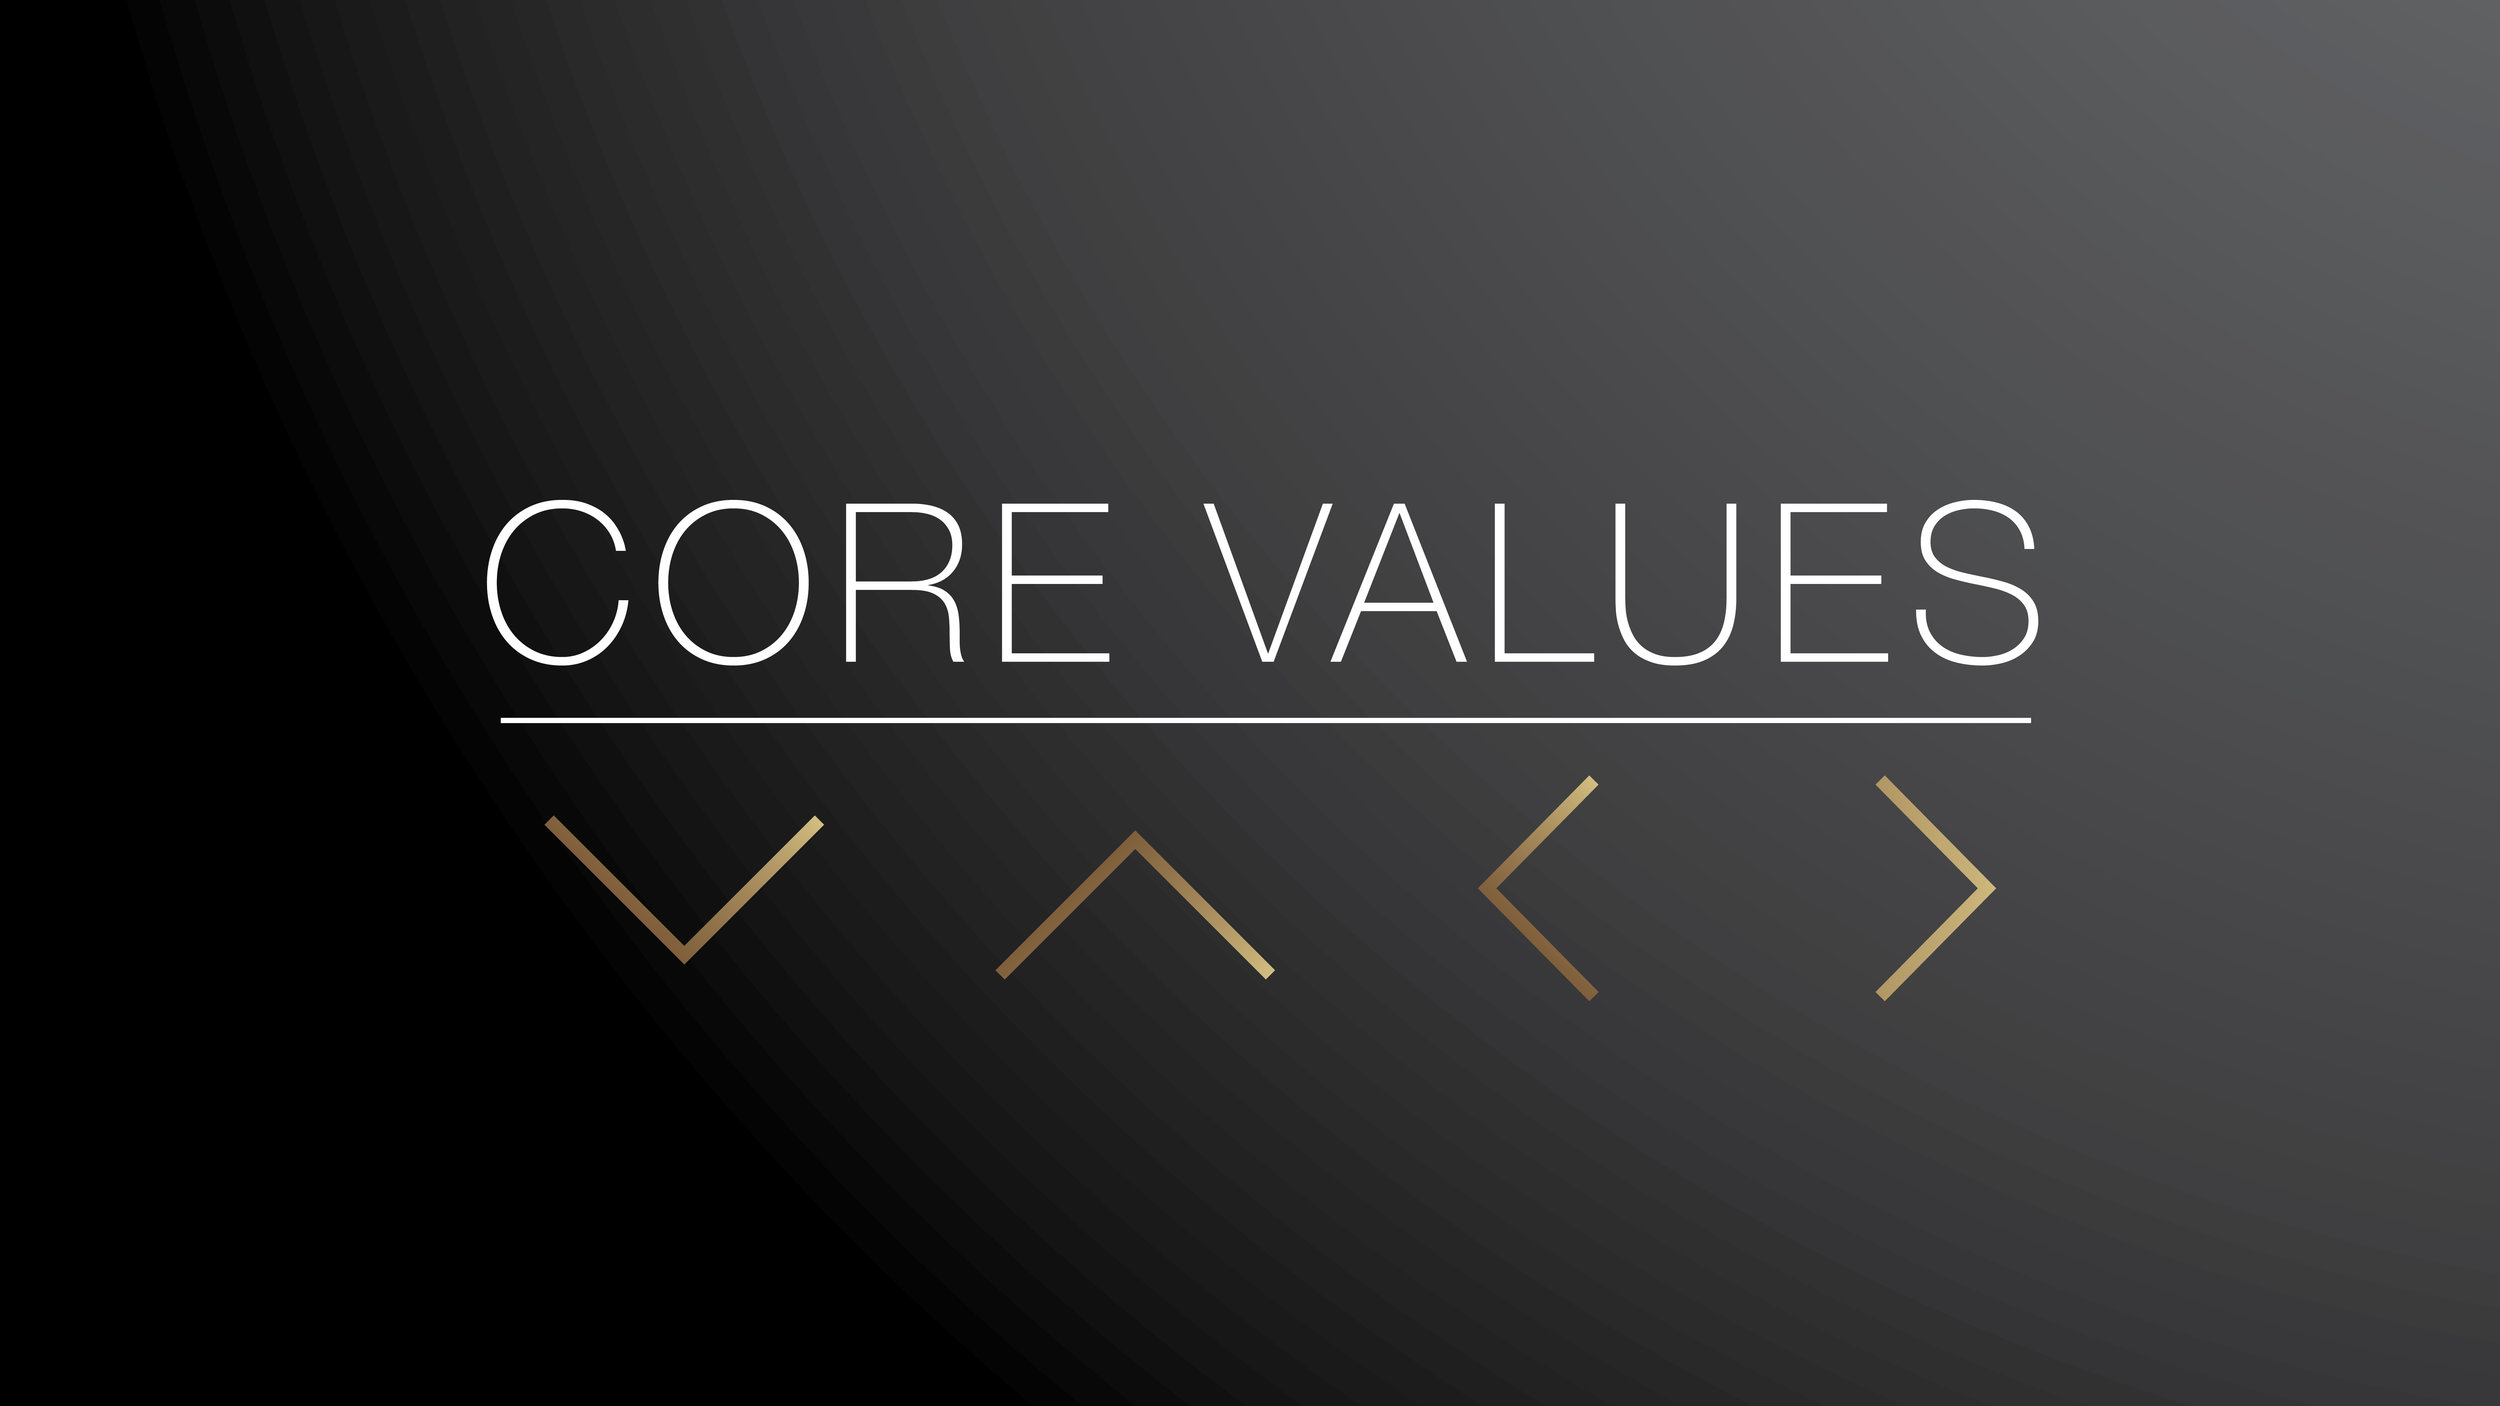 CORE VALUES5-1.jpeg